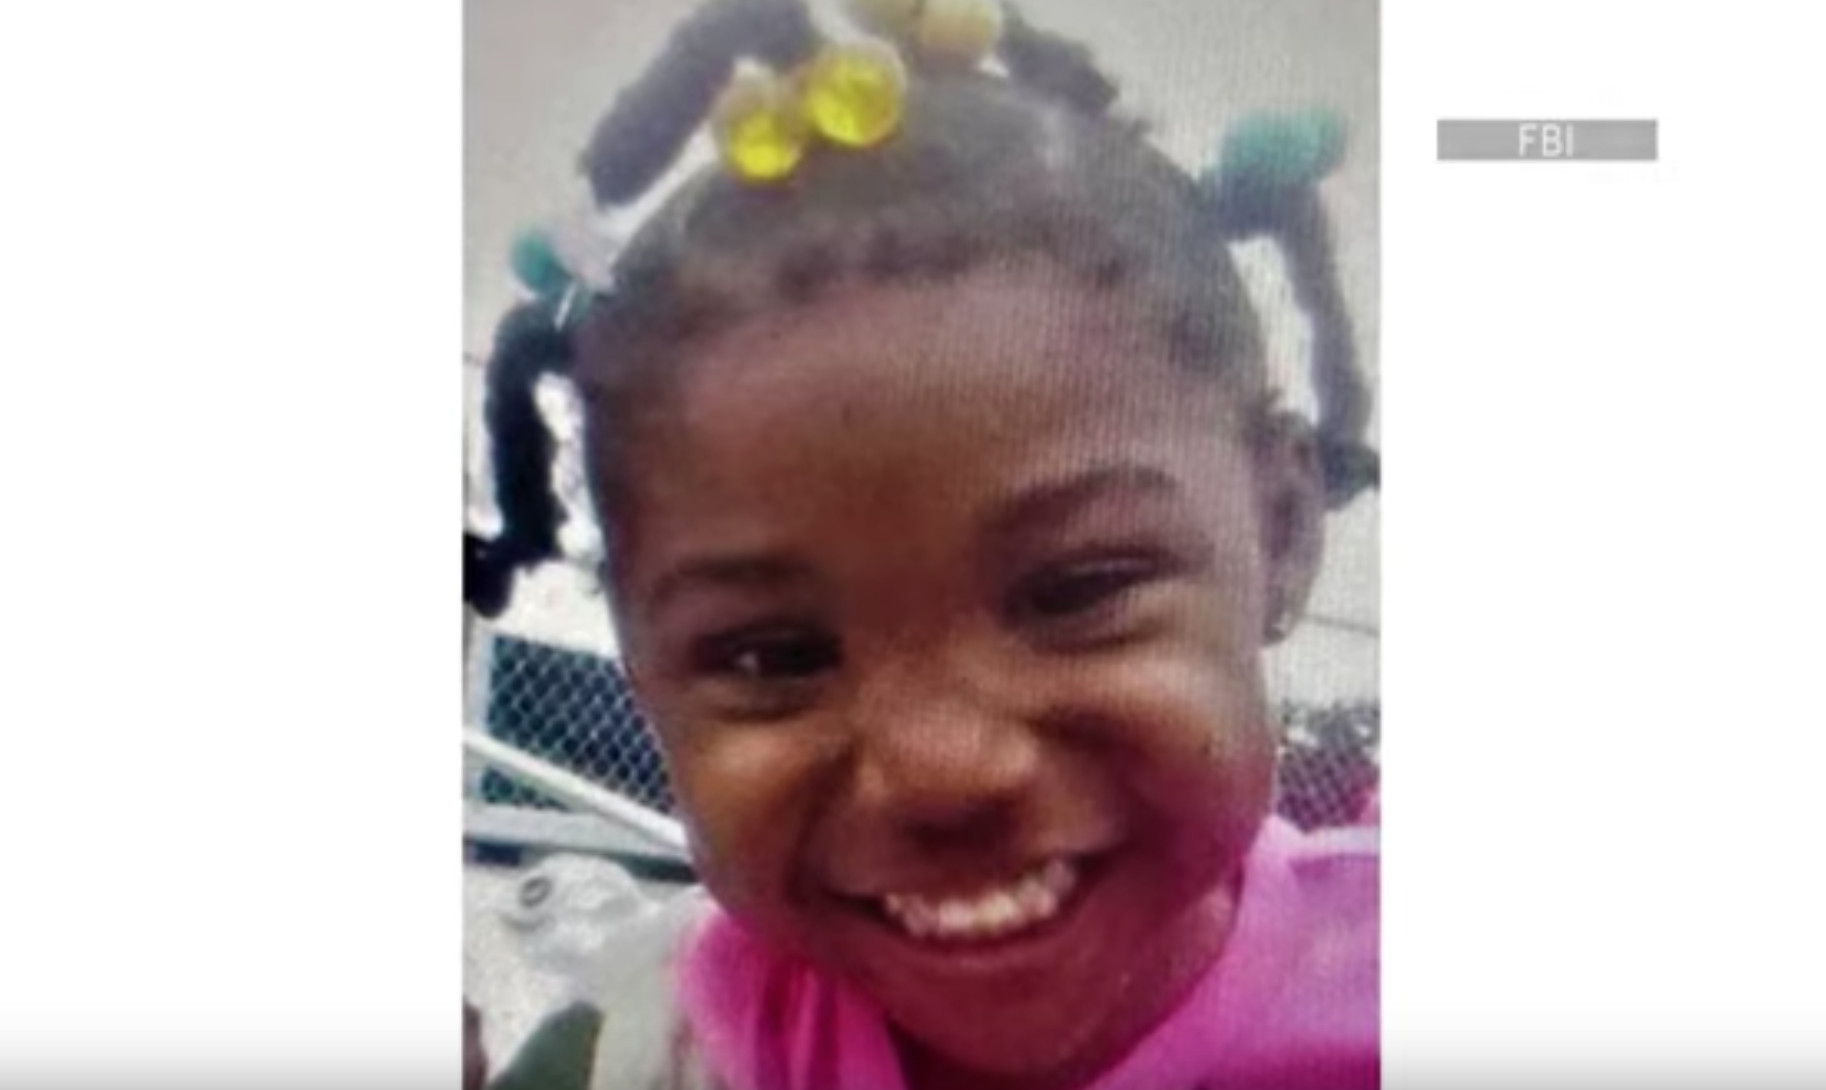 Body of Missing Alabama 3-Year-Old Kamille 'Cupcake' McKinney Found in Dumpster